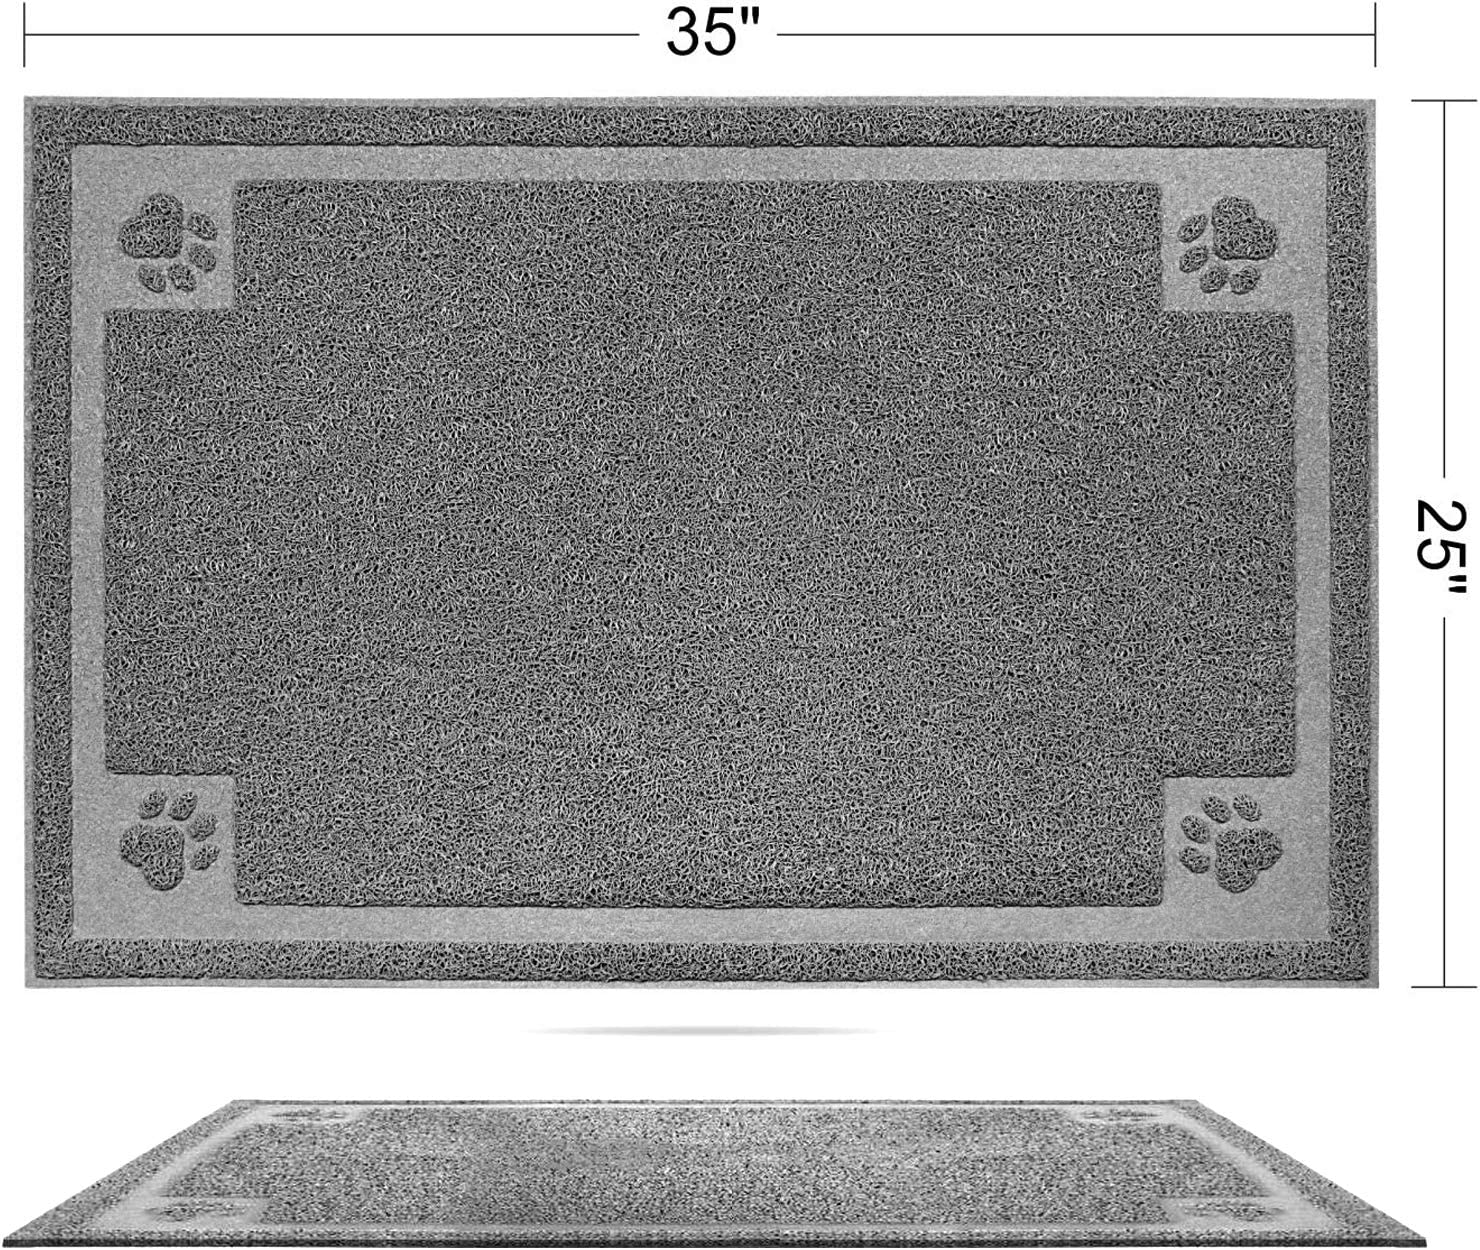 SHUNAI Pet Feeding Mat for Dogs and Cats 35 x 25 Inches Extra Large Flexible and Waterproof Pet Food and Water Bowl, Easy to Clean Dog Food Mat Floors with Non Slip Back